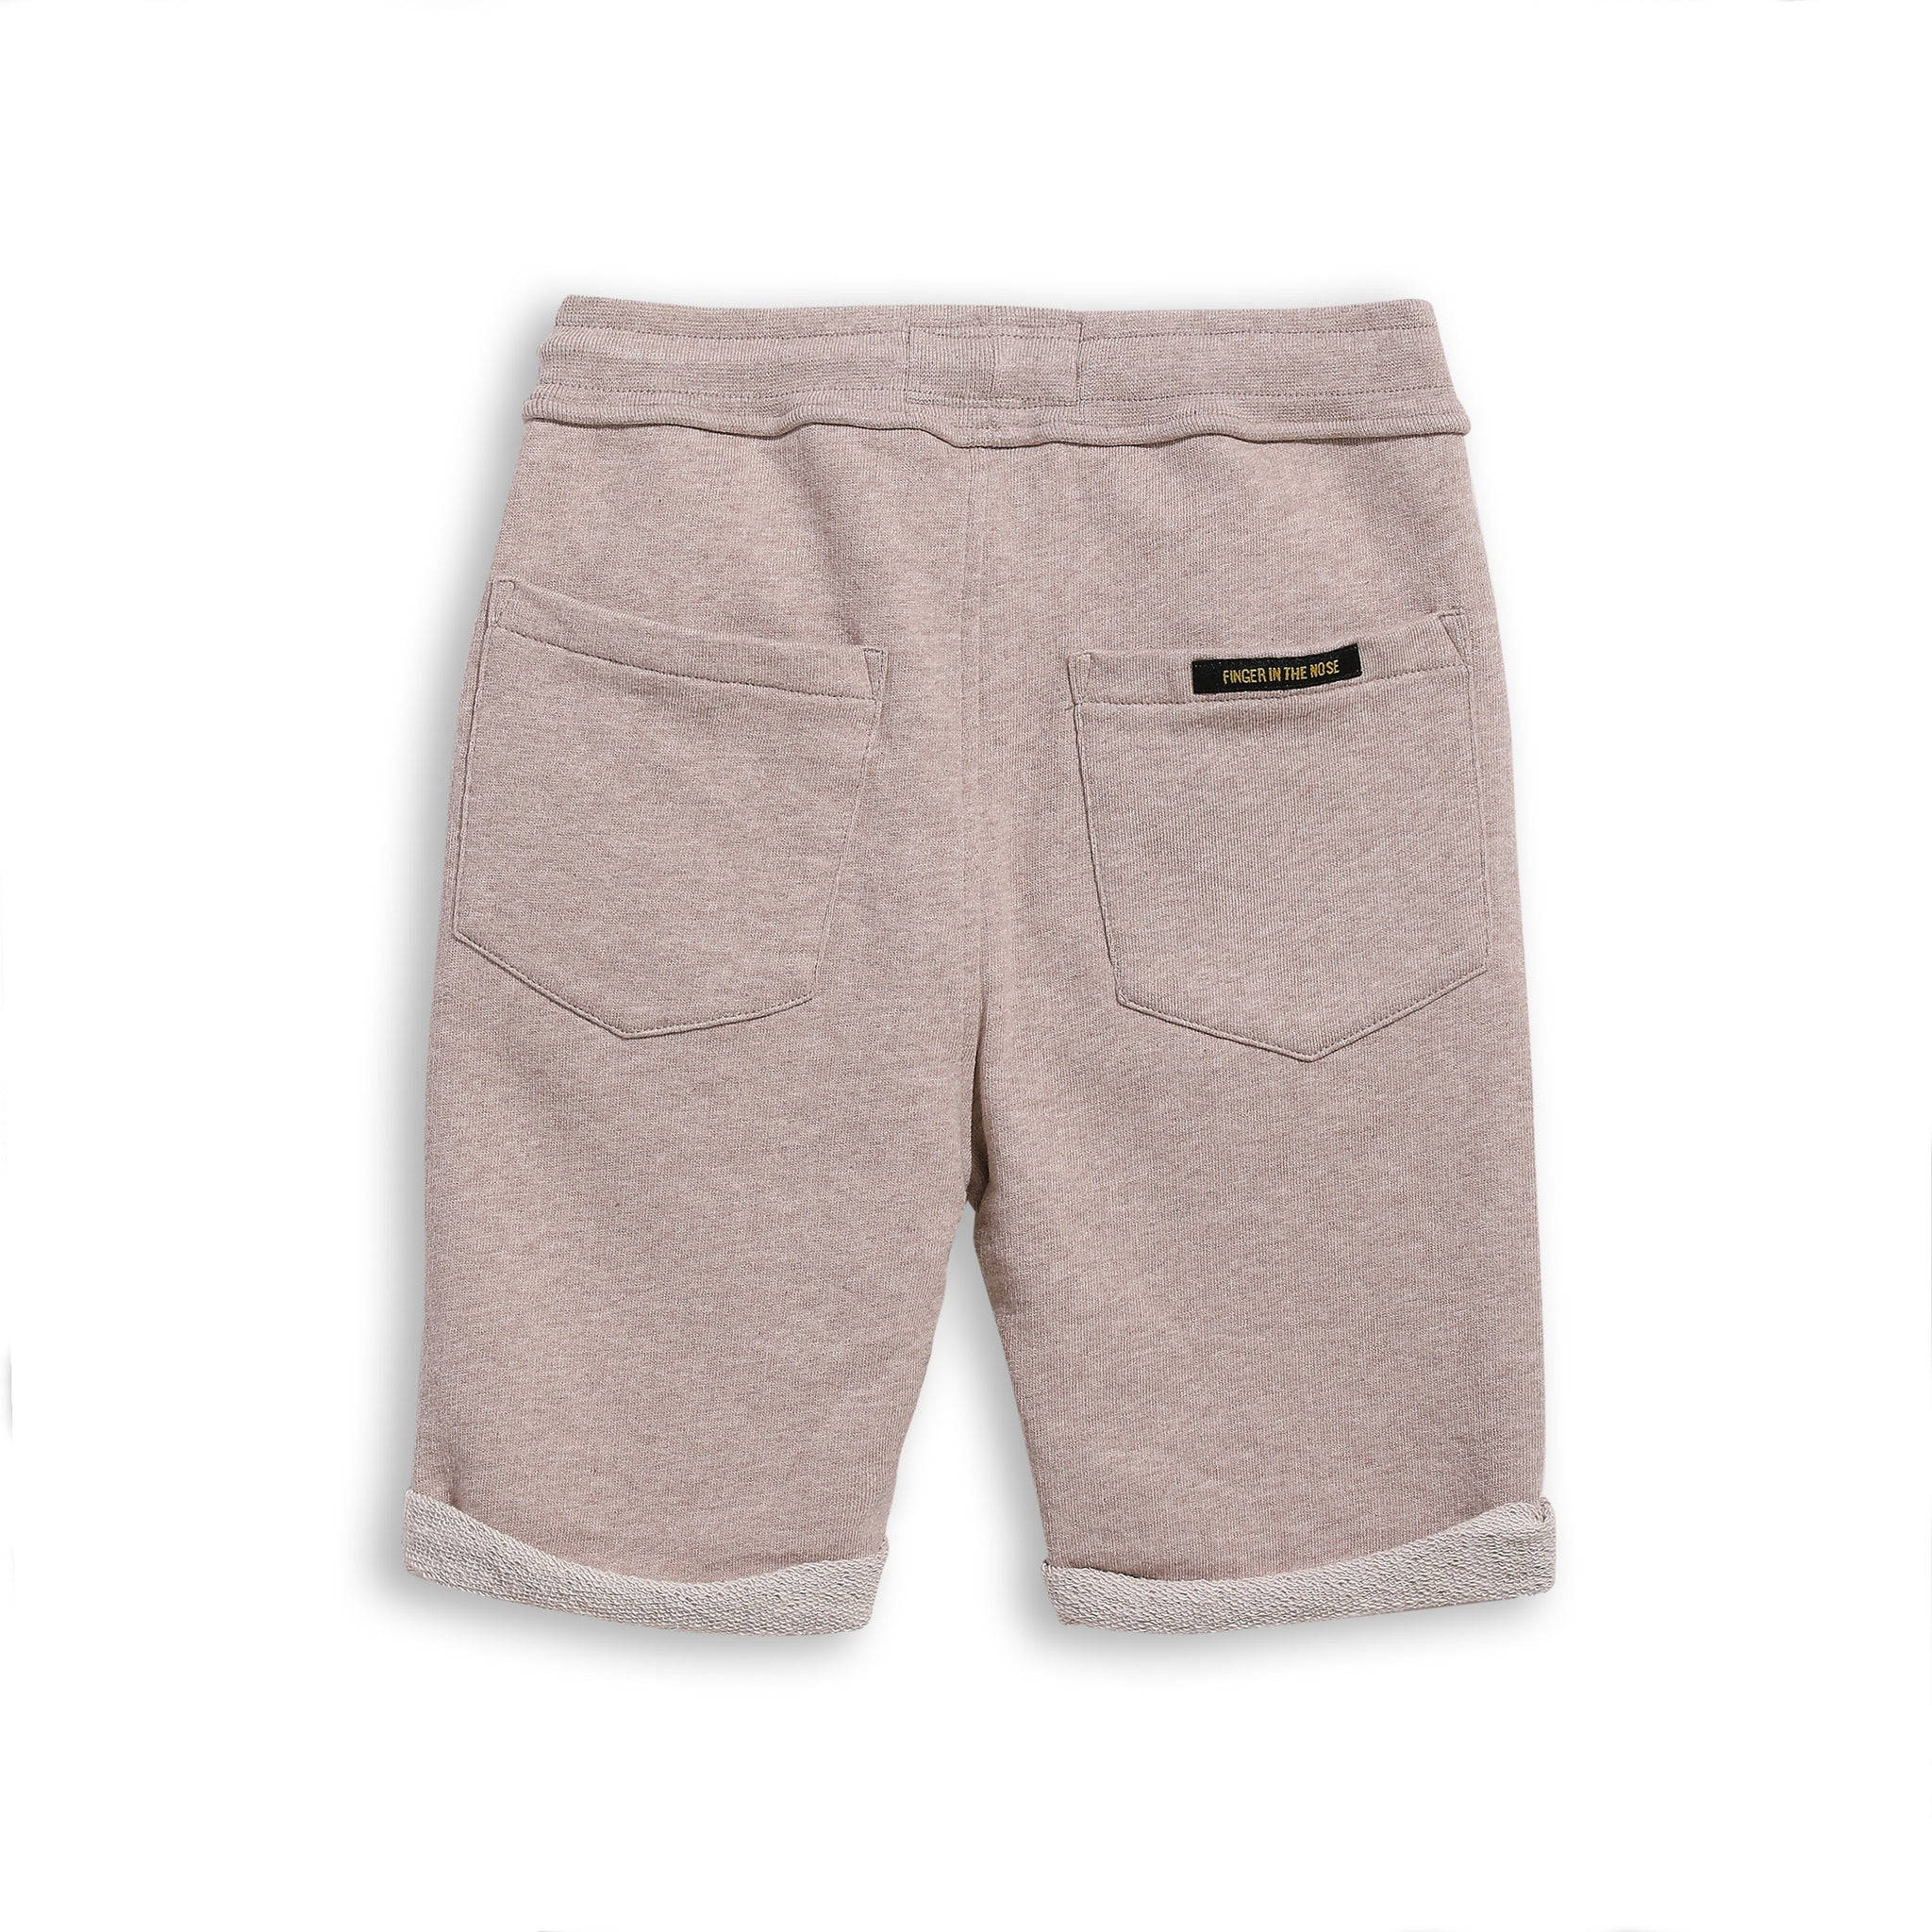 NEW GROUNDED Heather Sand - Comfort Fit Fleece Bermudas 2